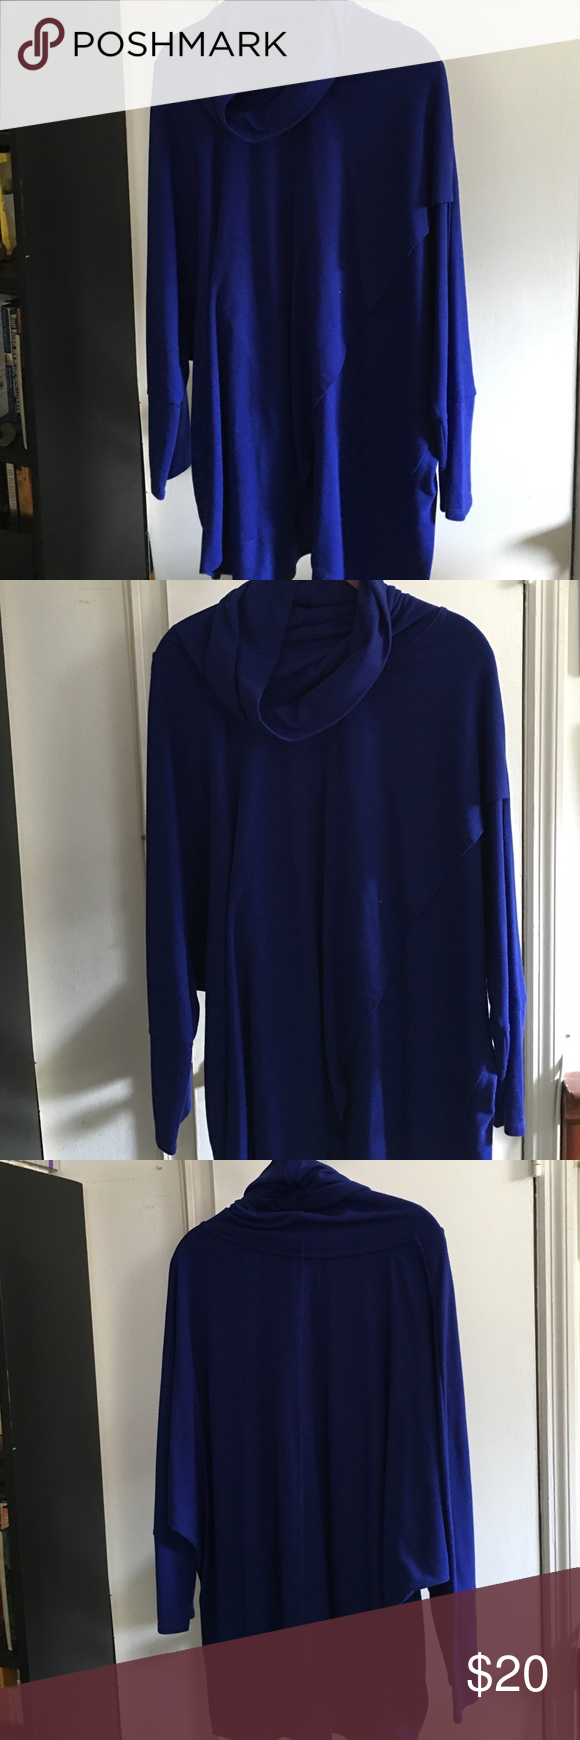 Ladies blouse Women's blue drape blouse Kate and Mallory Tops Blouses